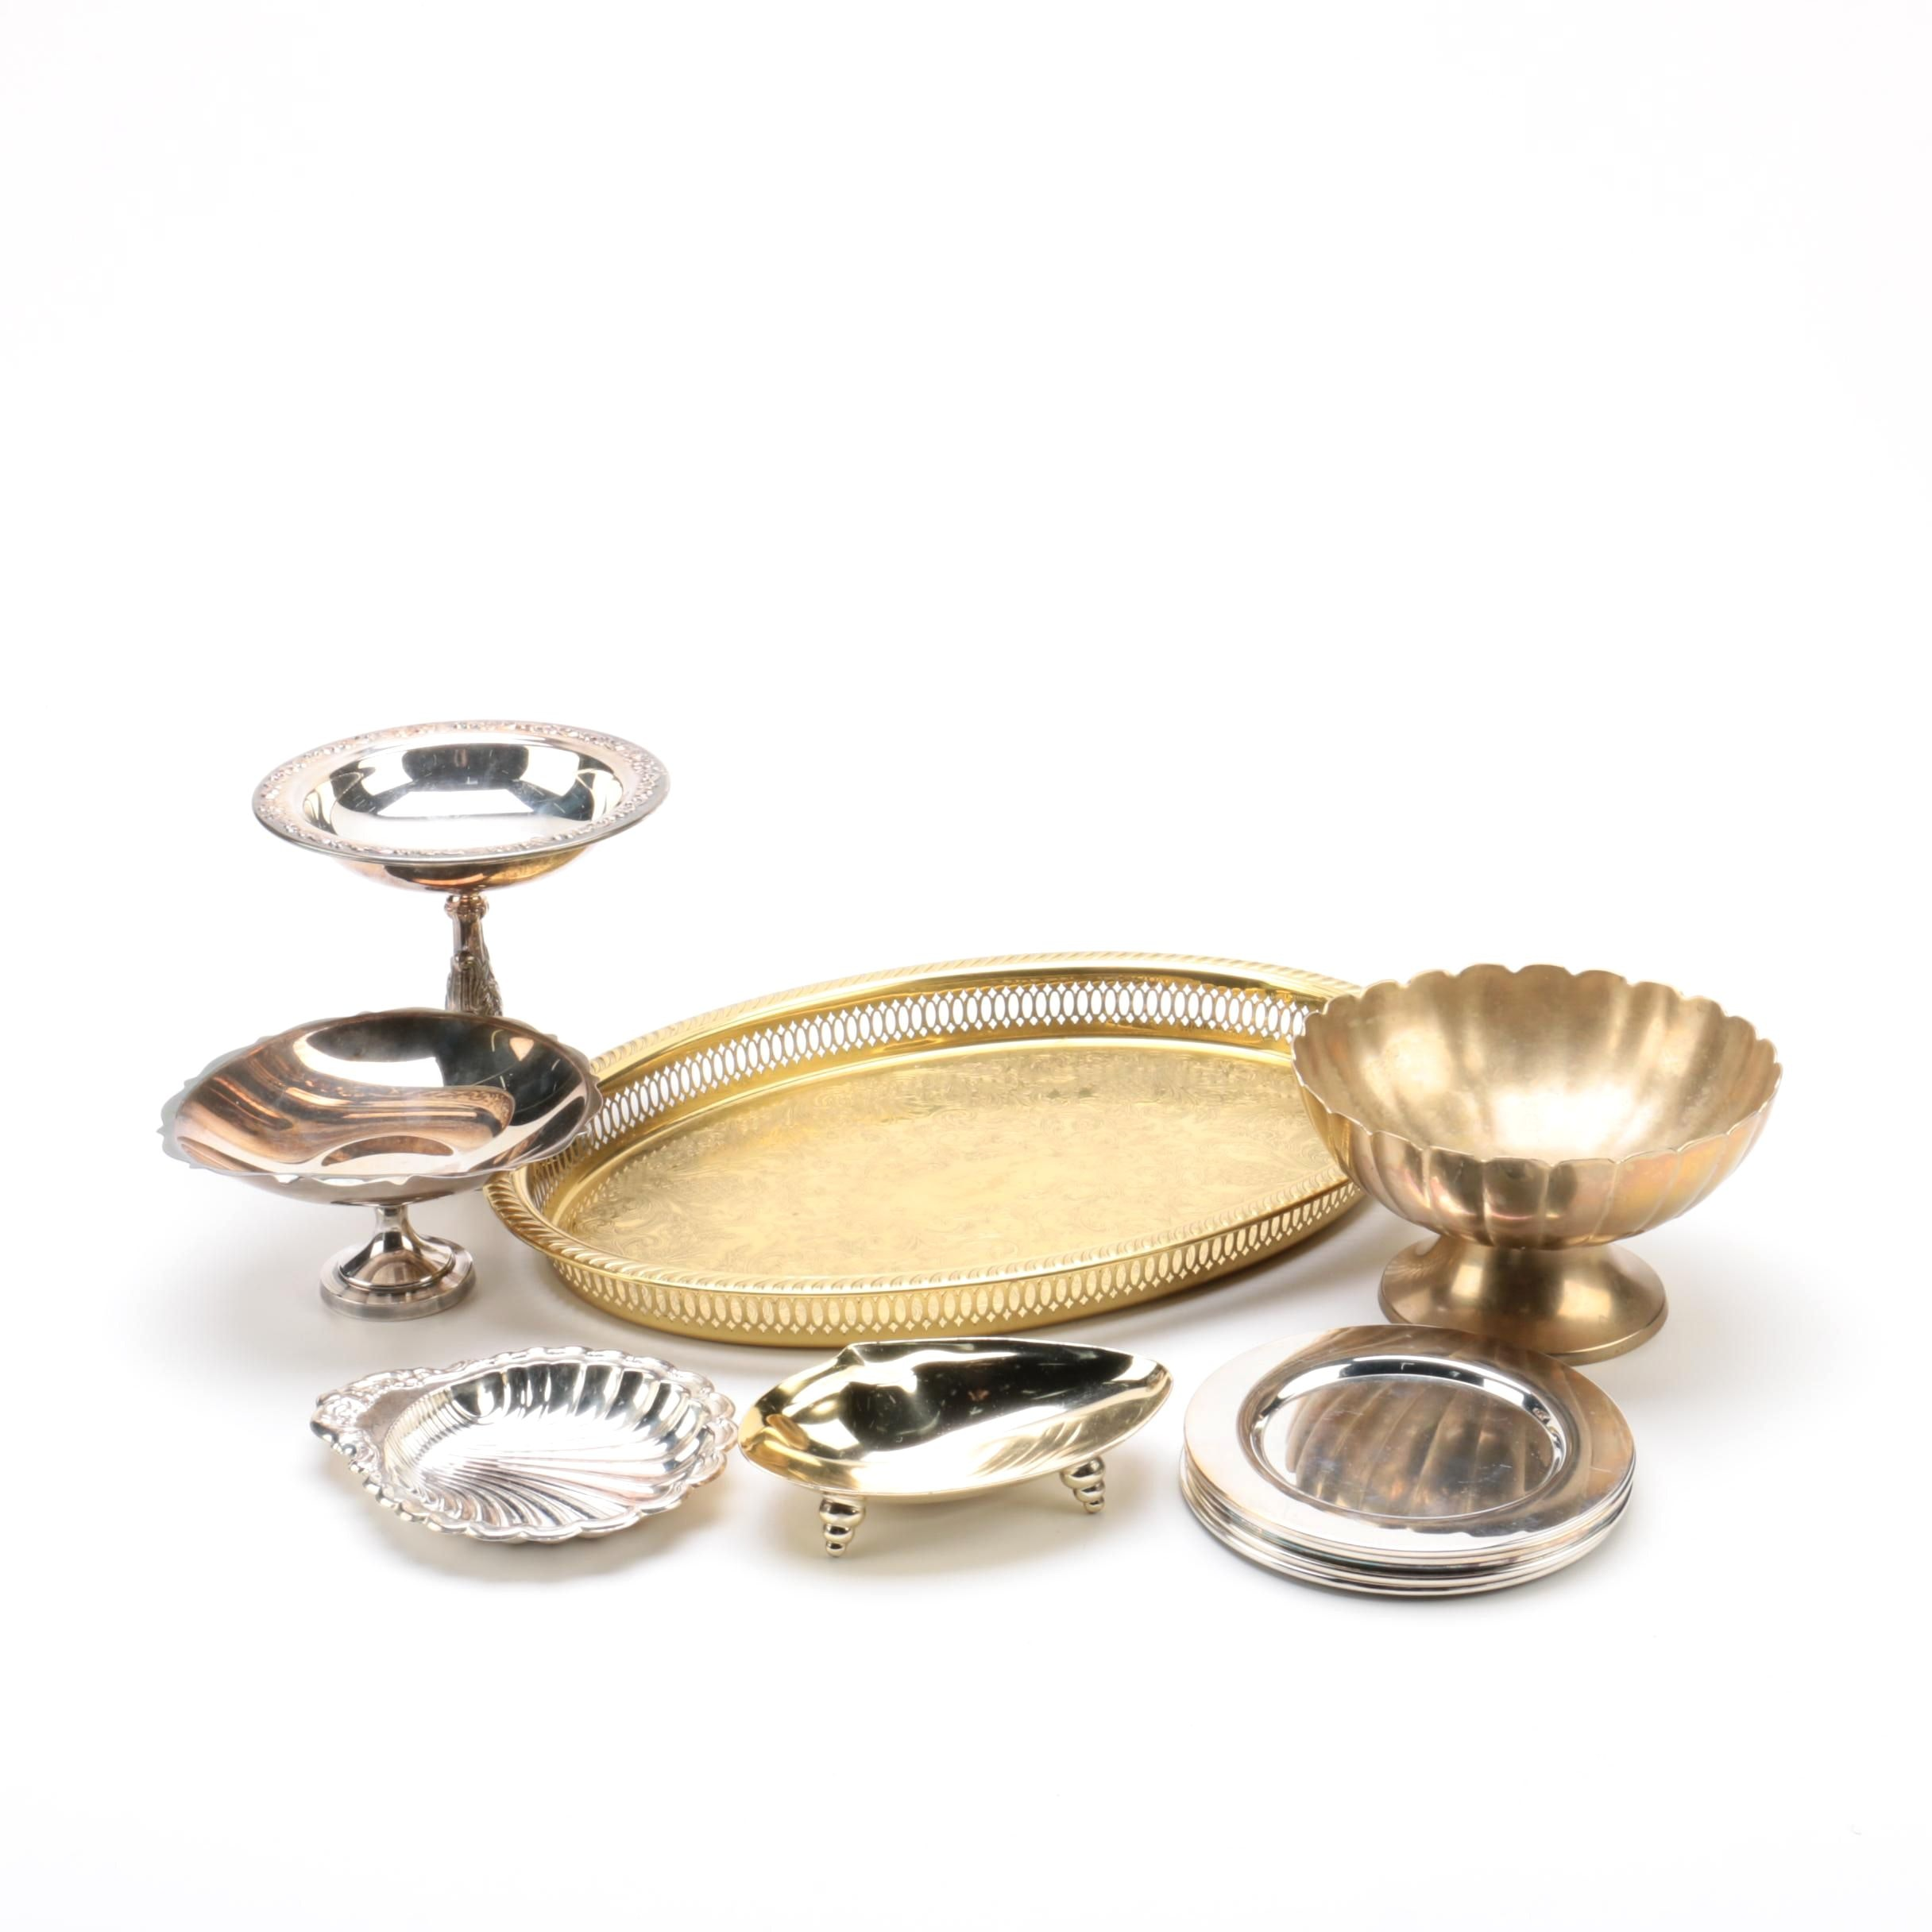 Silver Plate and Brass Serveware